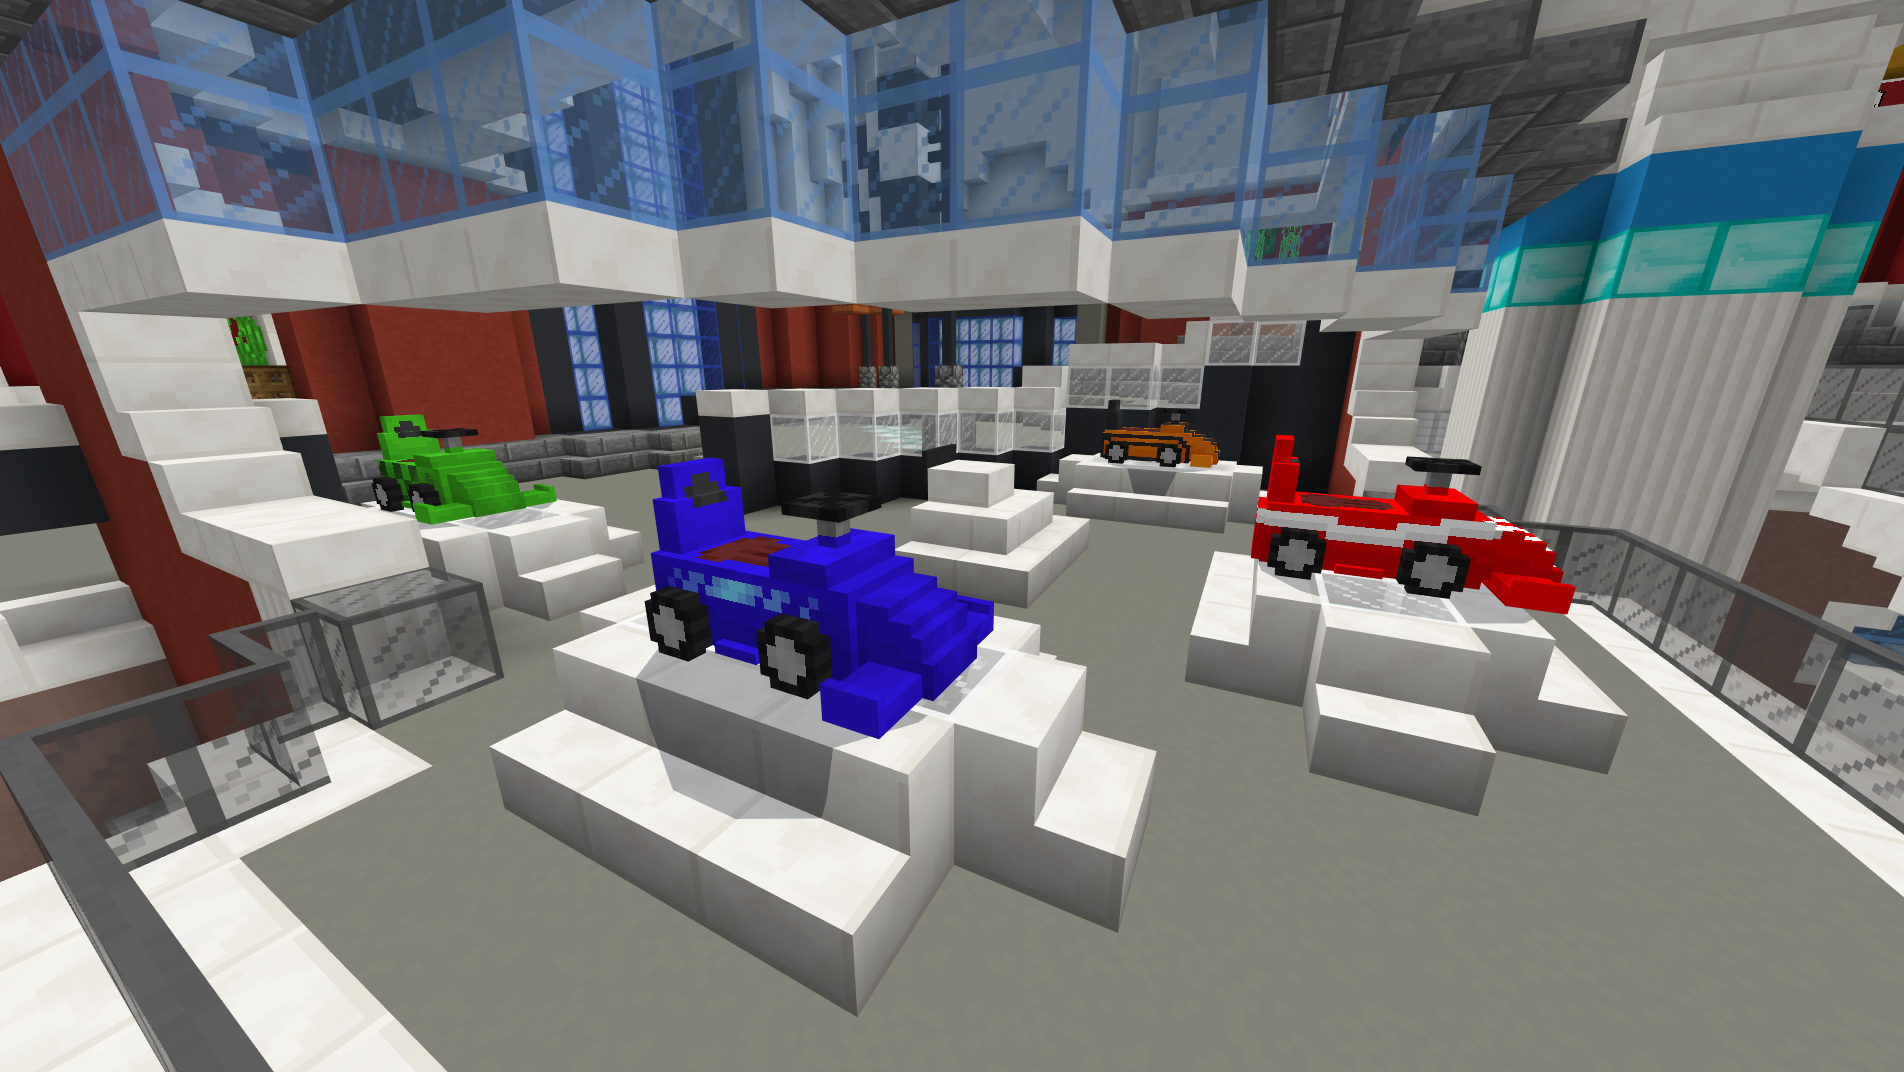 Discover hidden secrets around the Grid Runners hub, including cars and a racecourse!